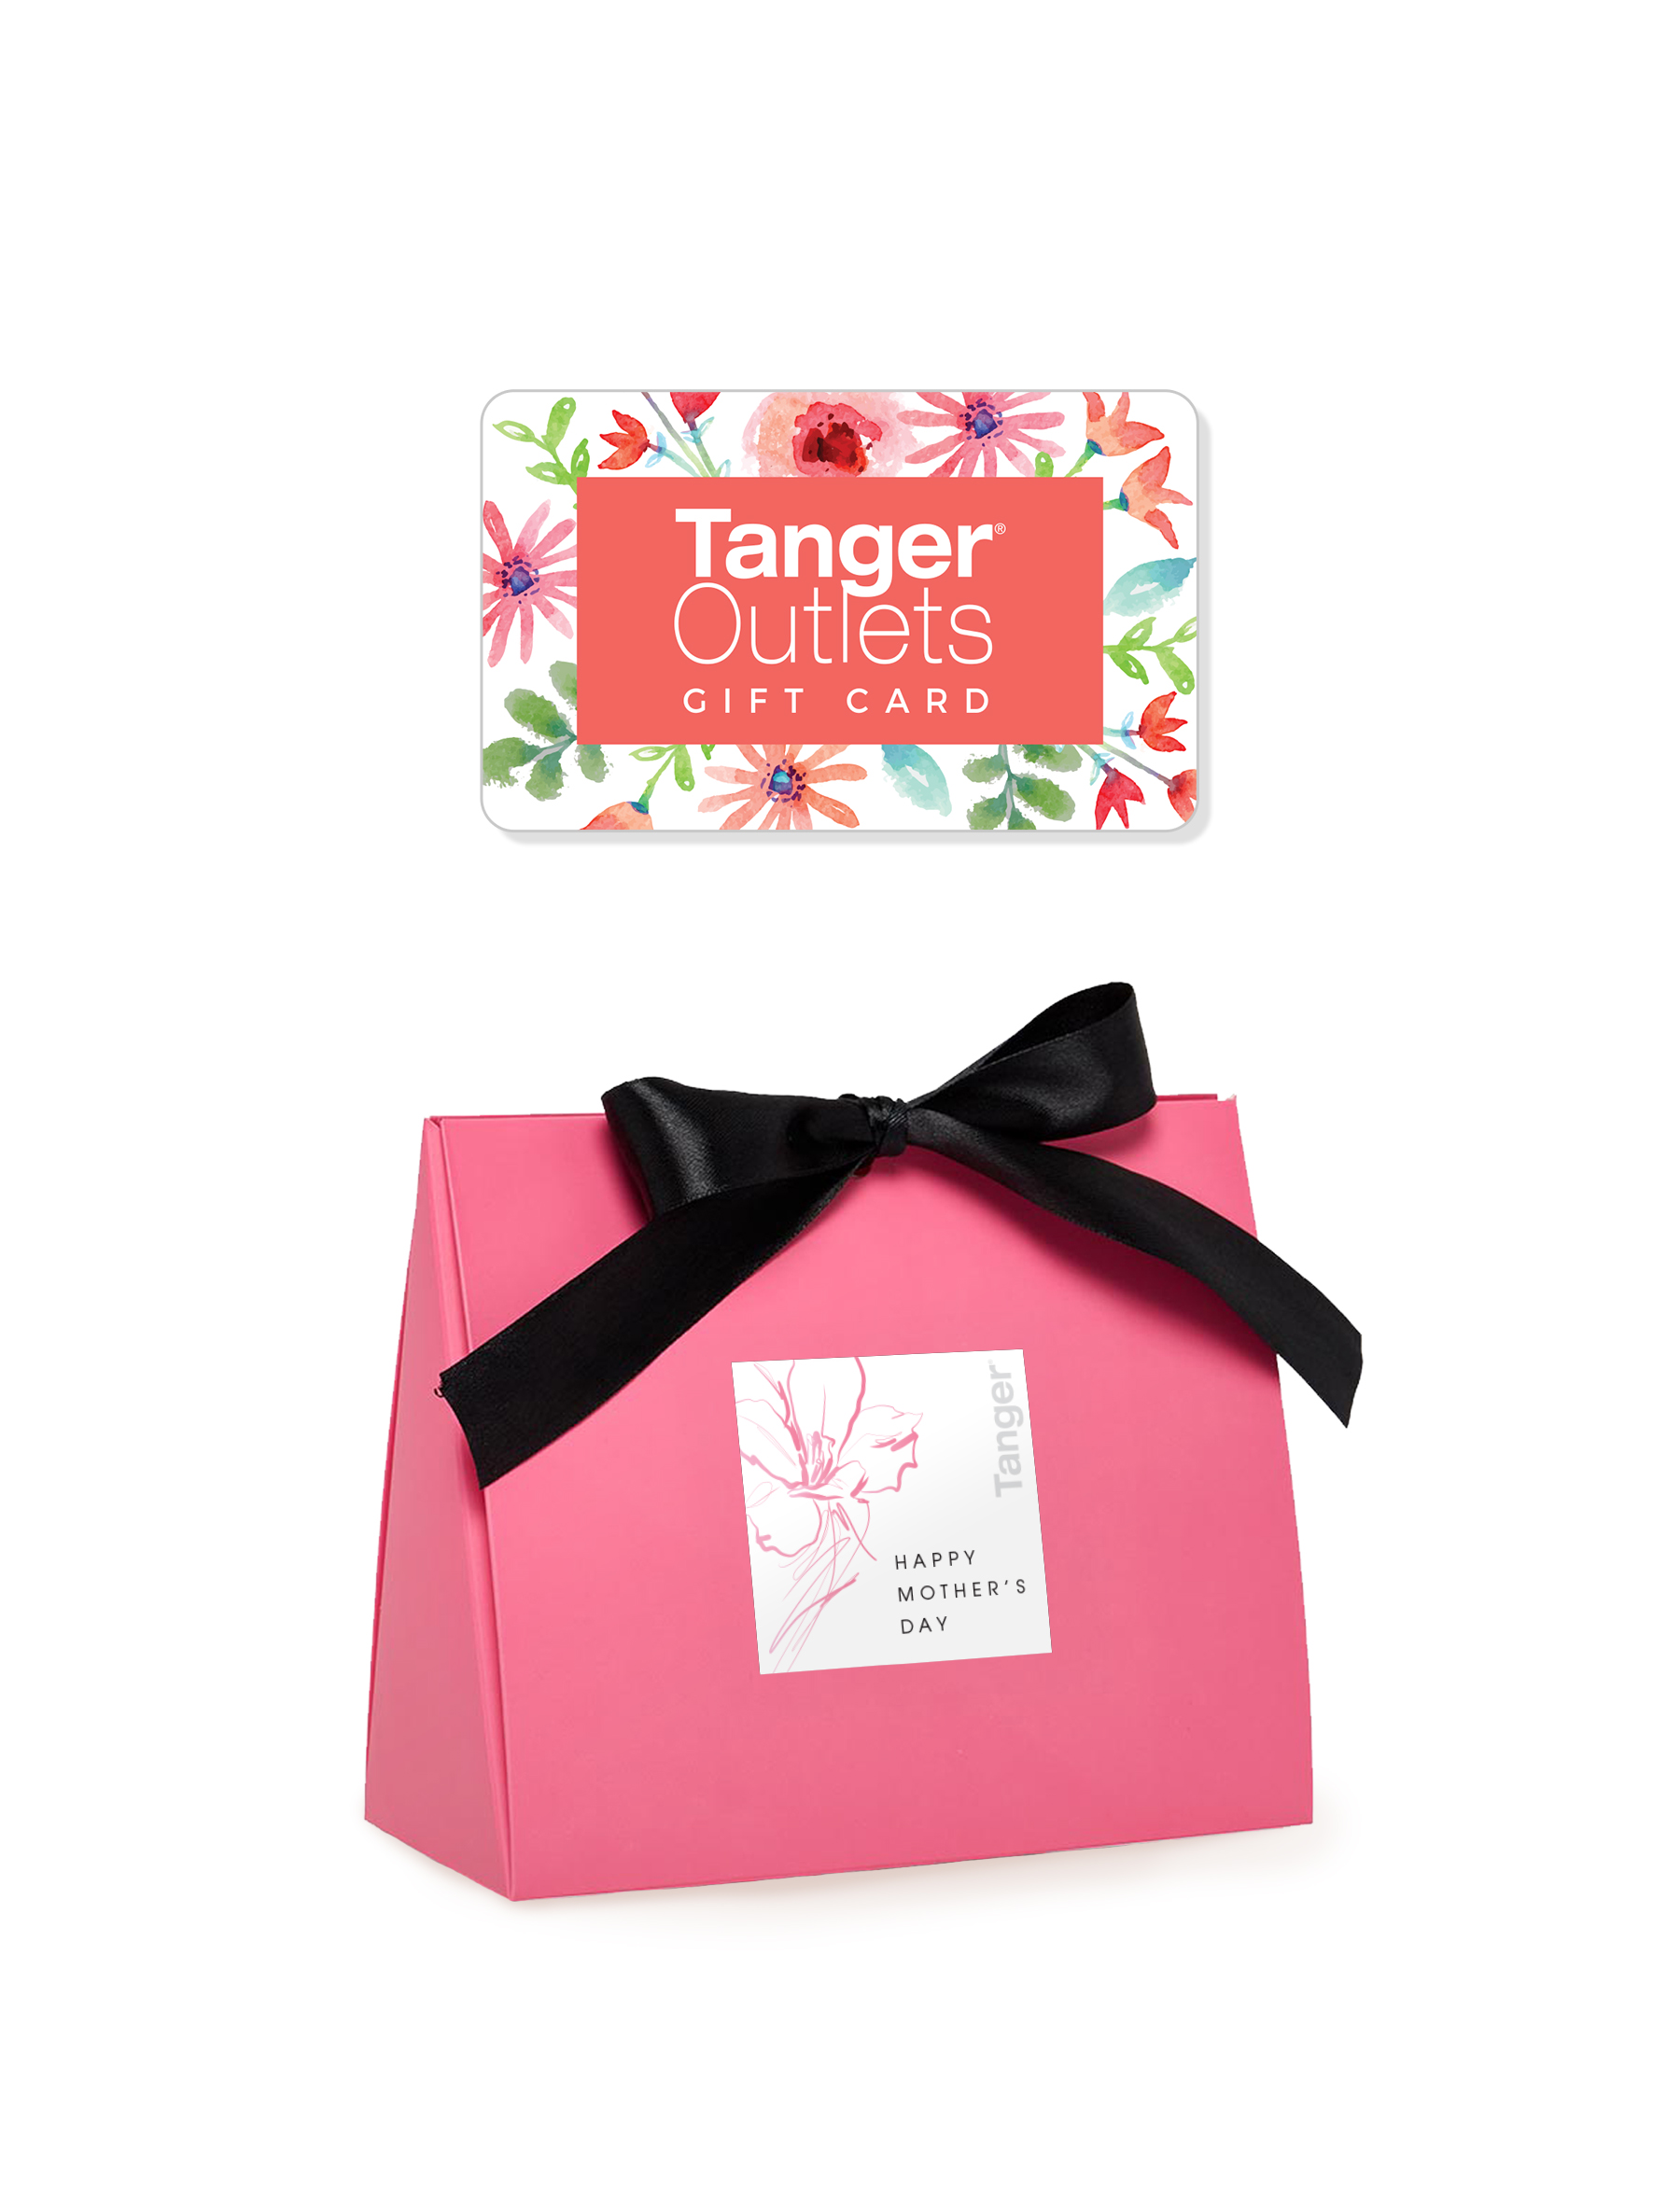 $50 Tanger Outlets Gift Card & Packaging